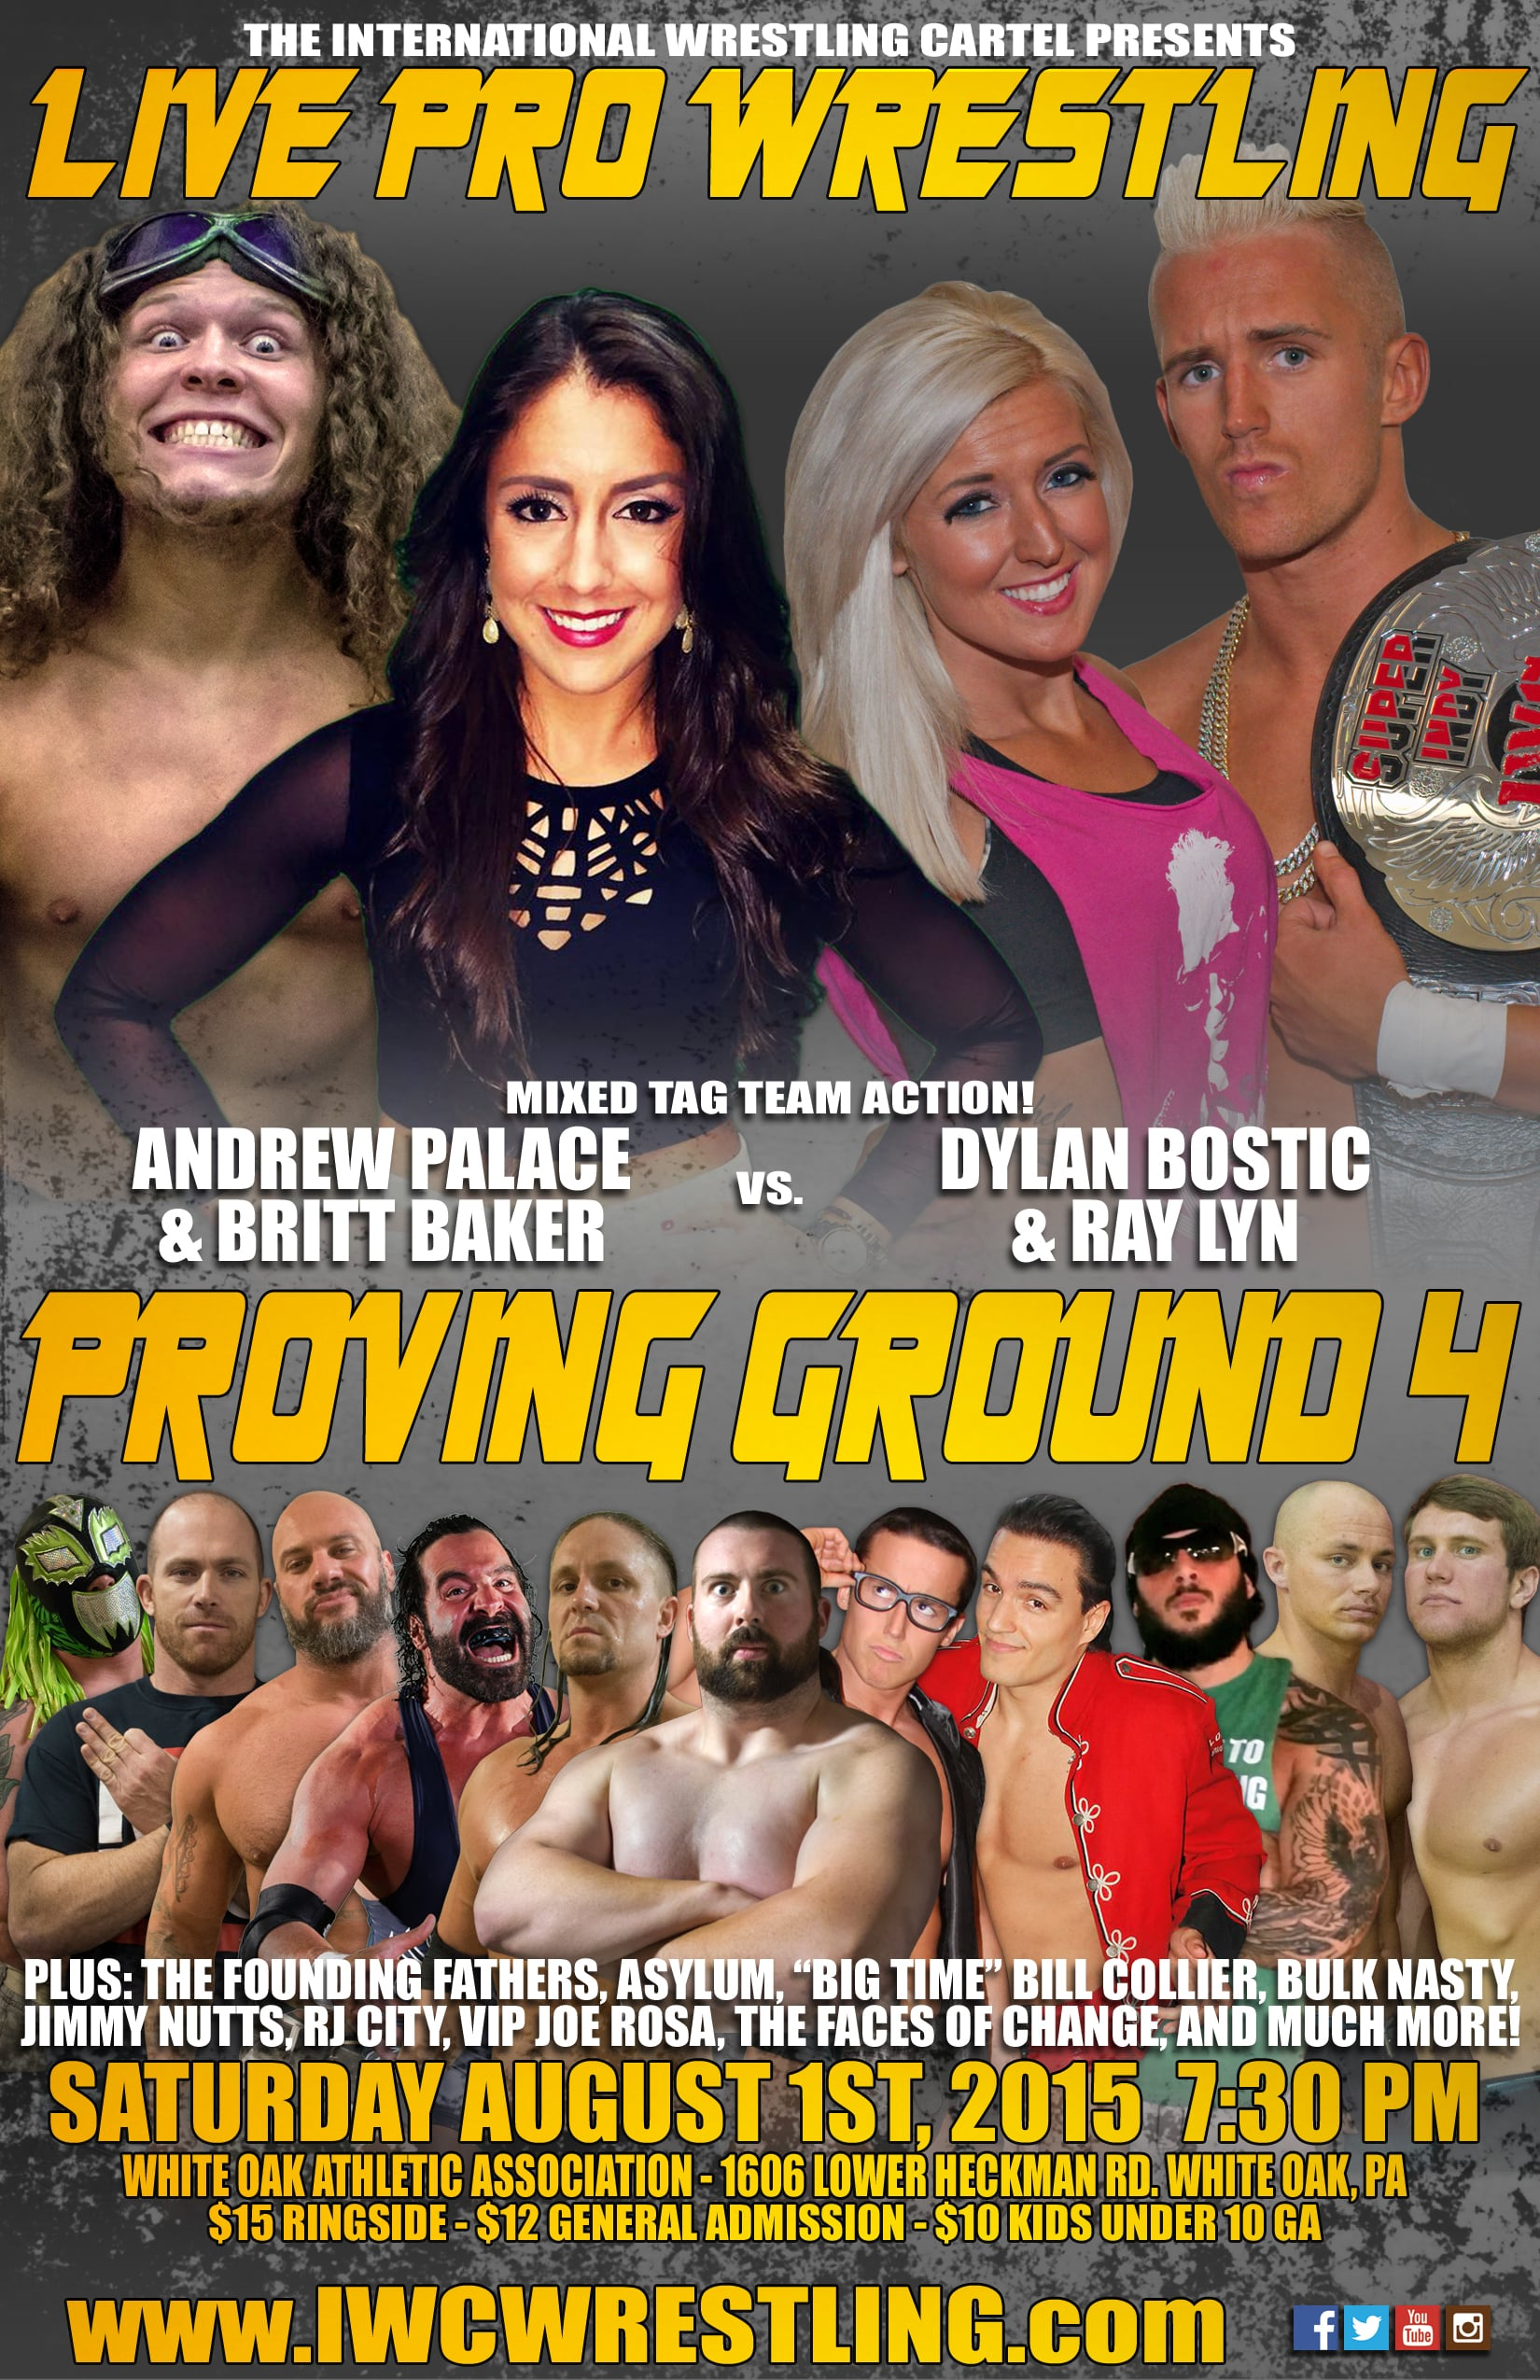 08.01.2015 Proving Ground 4 (IWC).jpg